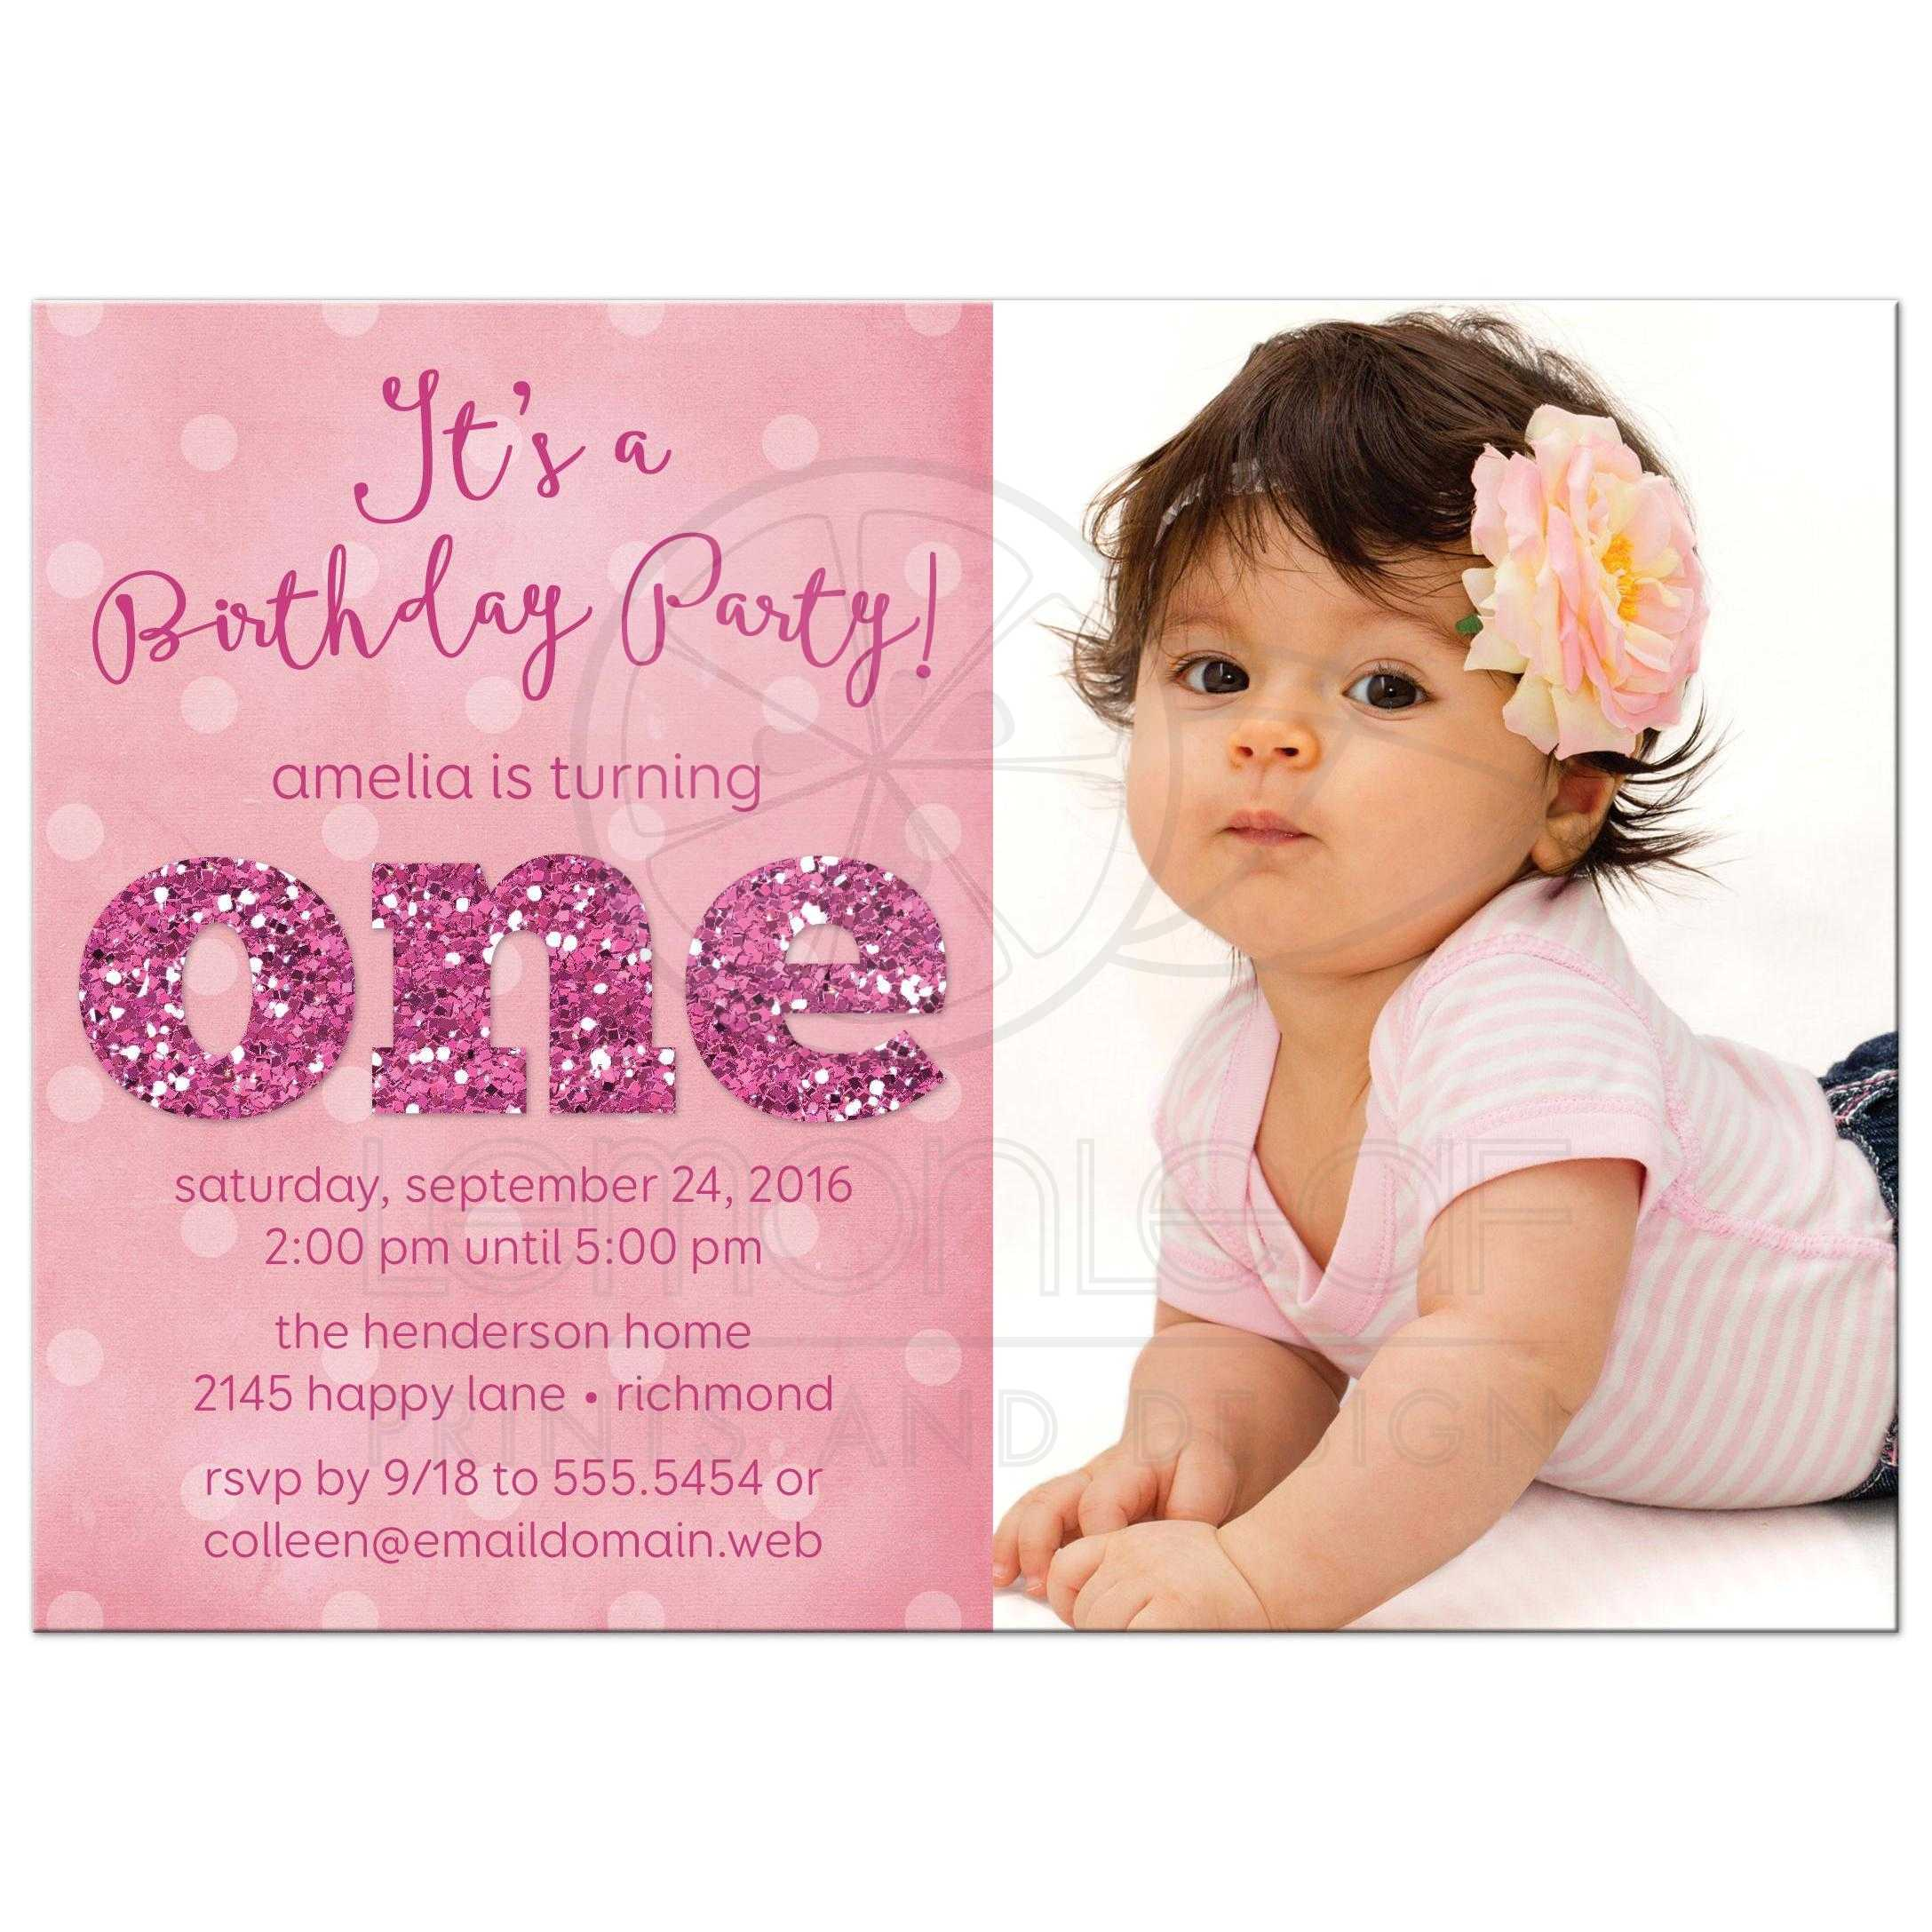 baby first birthday invitation templates free ; 1st-birthday-invitation-templates-free-best-of-invitation-baby-girl-1st-birthday-invitation-template-of-1st-birthday-invitation-templates-free